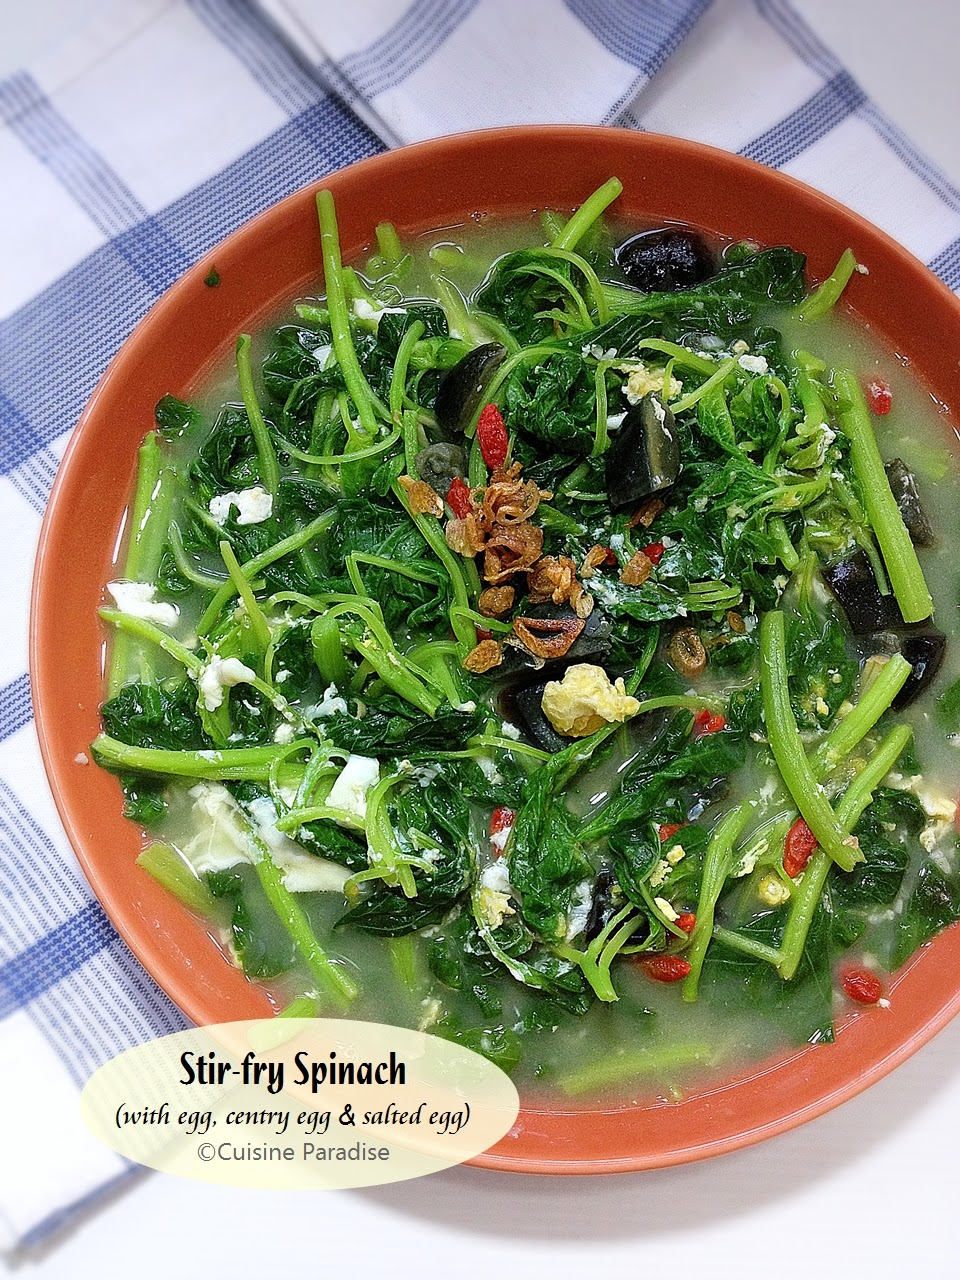 Cuisine paradise singapore food blog recipes reviews and 2 recipes chinese spinach with 3 eggs yin choy fishaball soup forumfinder Image collections